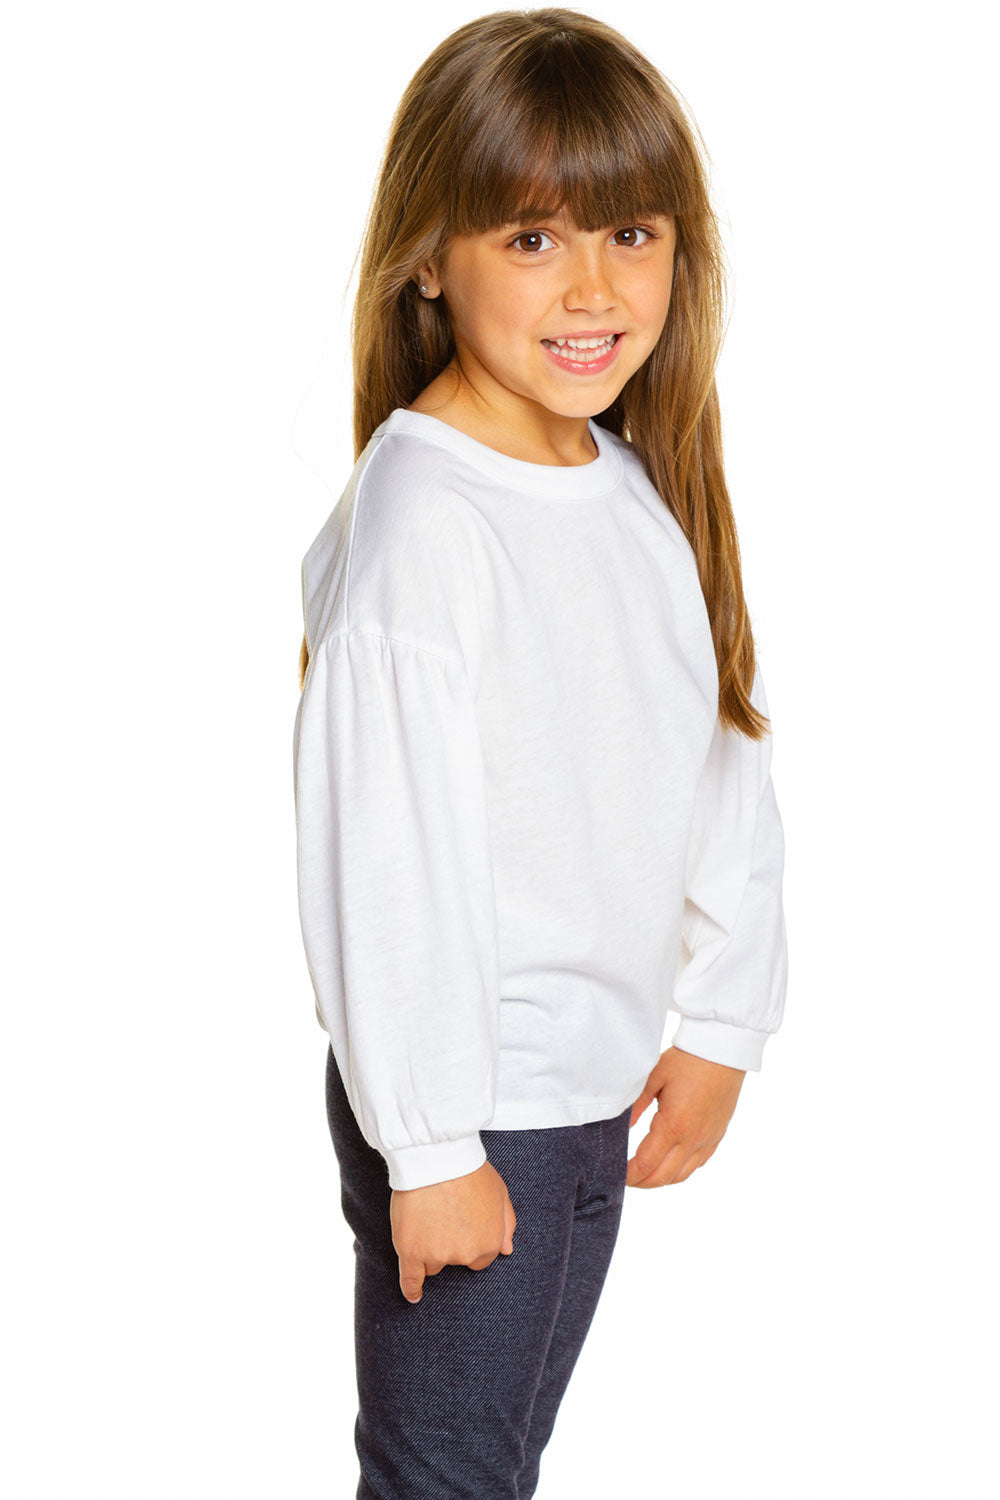 Girls Vintage Jersey Shirred Blouson Sleeve Tee GIRLS chaserbrand4.myshopify.com